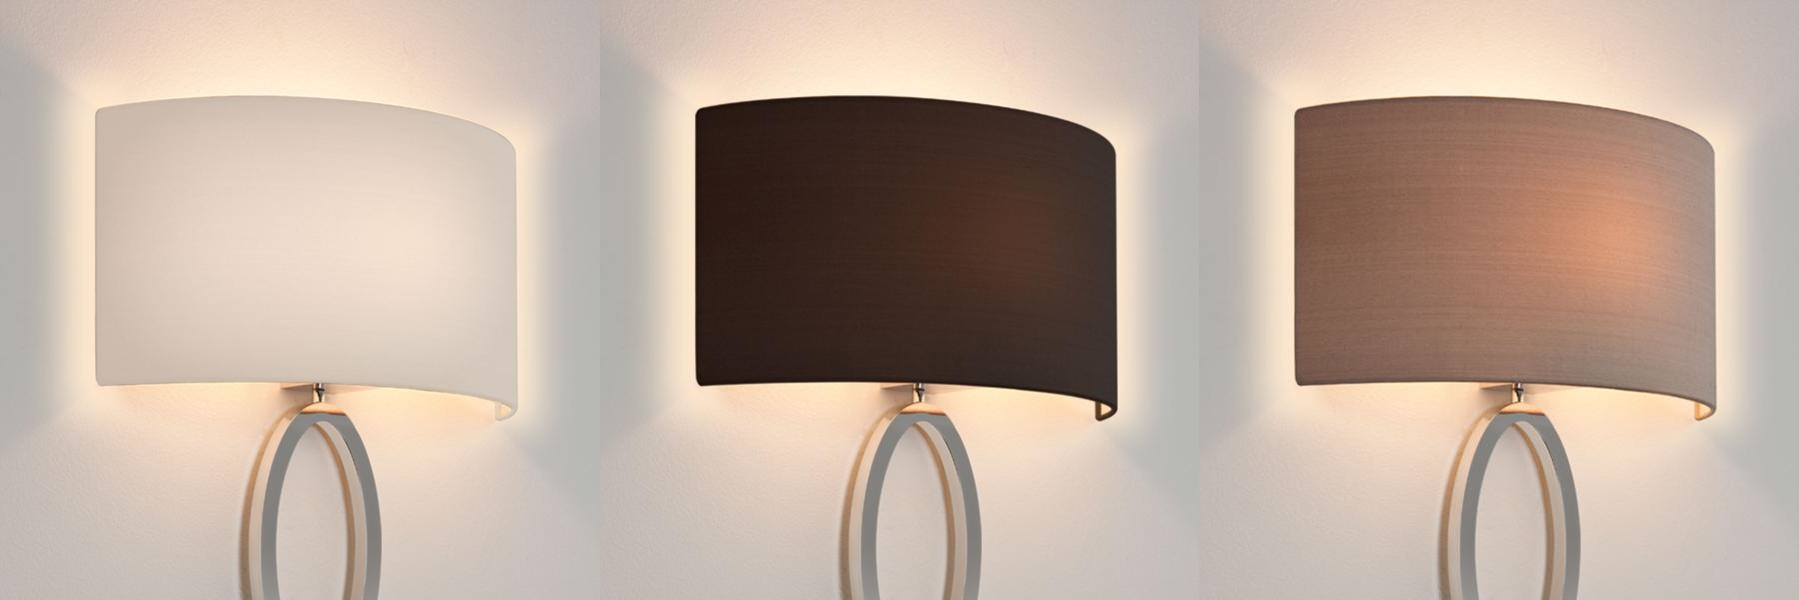 fabric wall light shades photo - 9